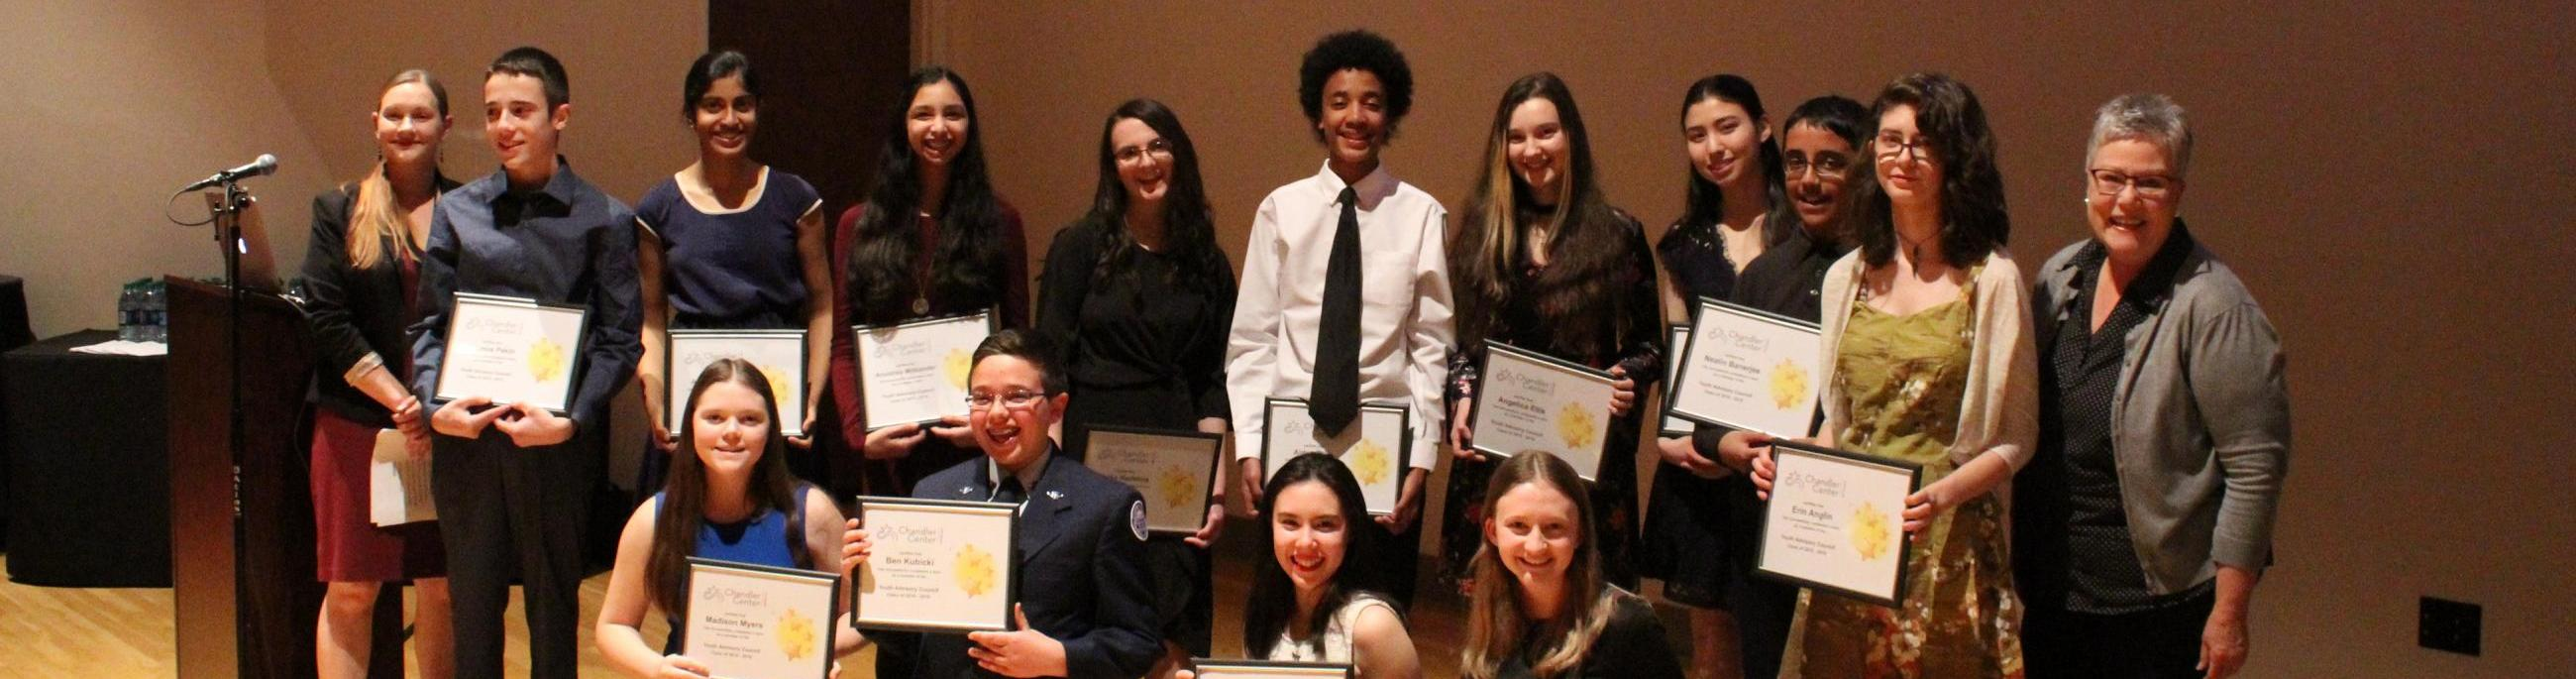 Become a member of the Youth Advisory Council